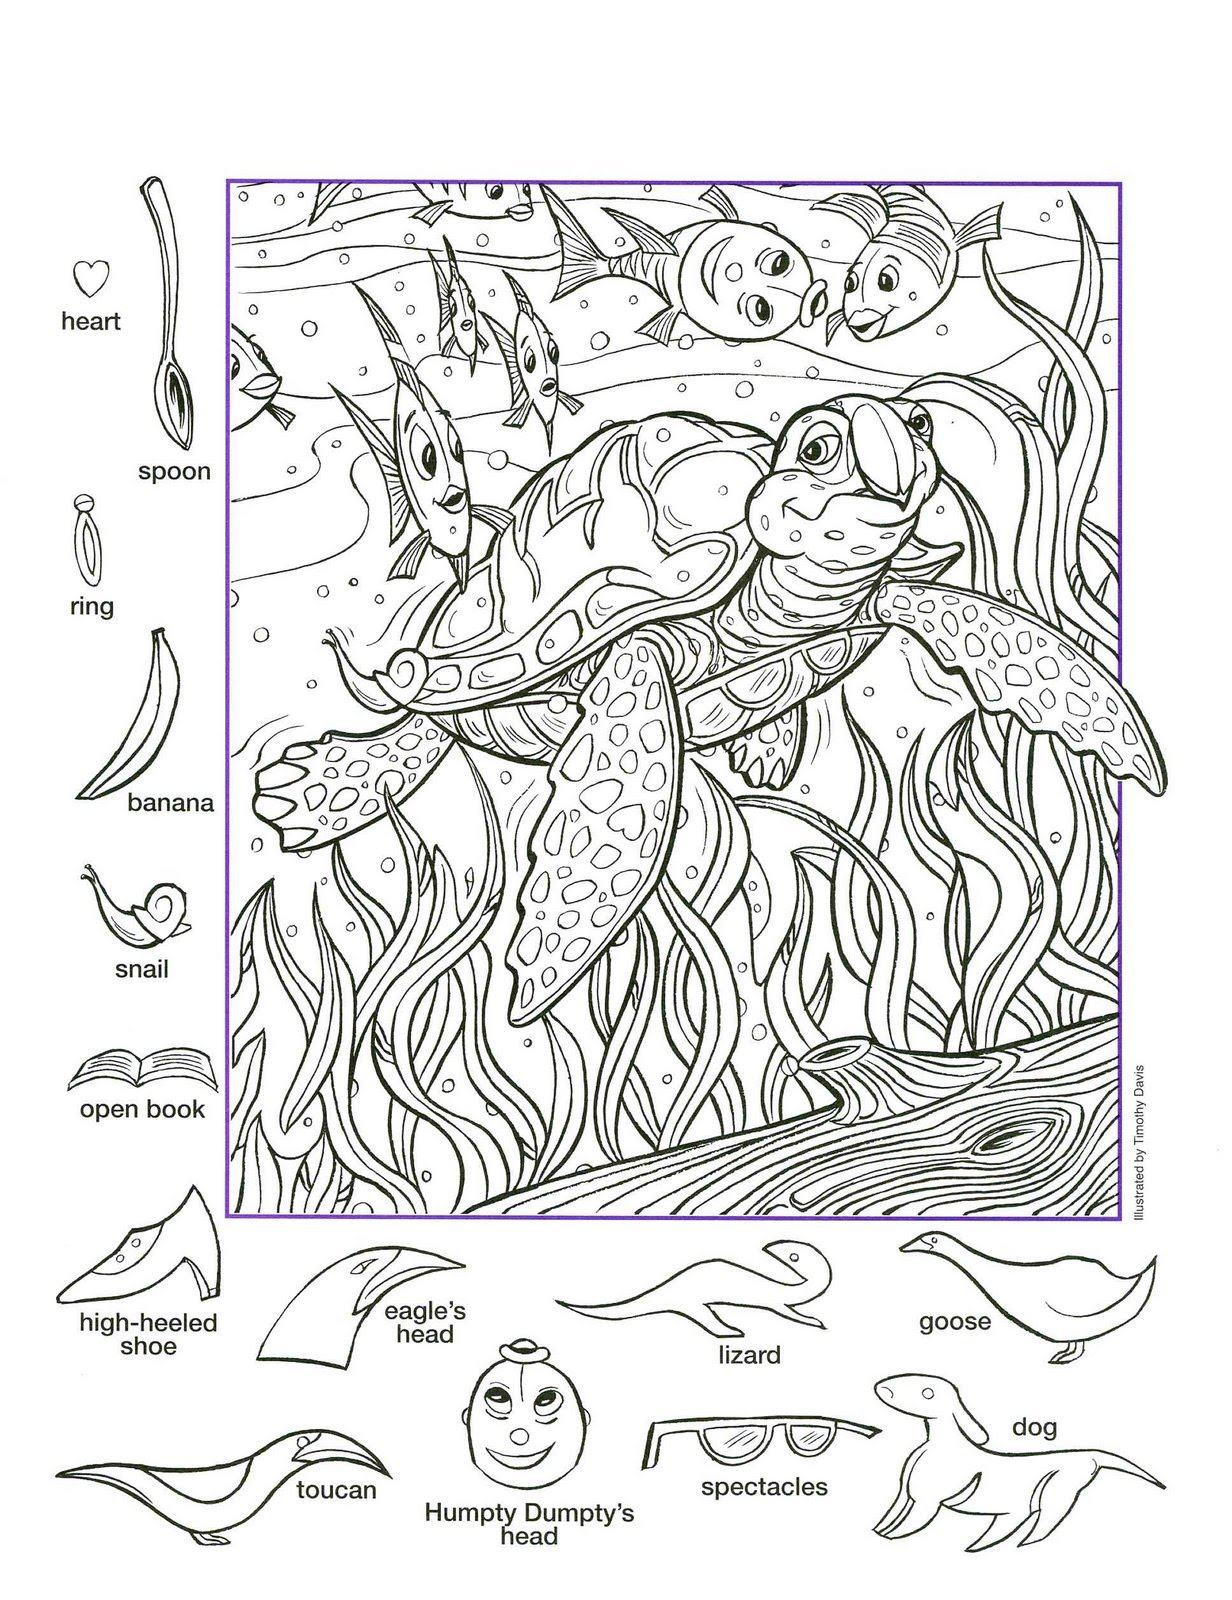 Bing - Settings